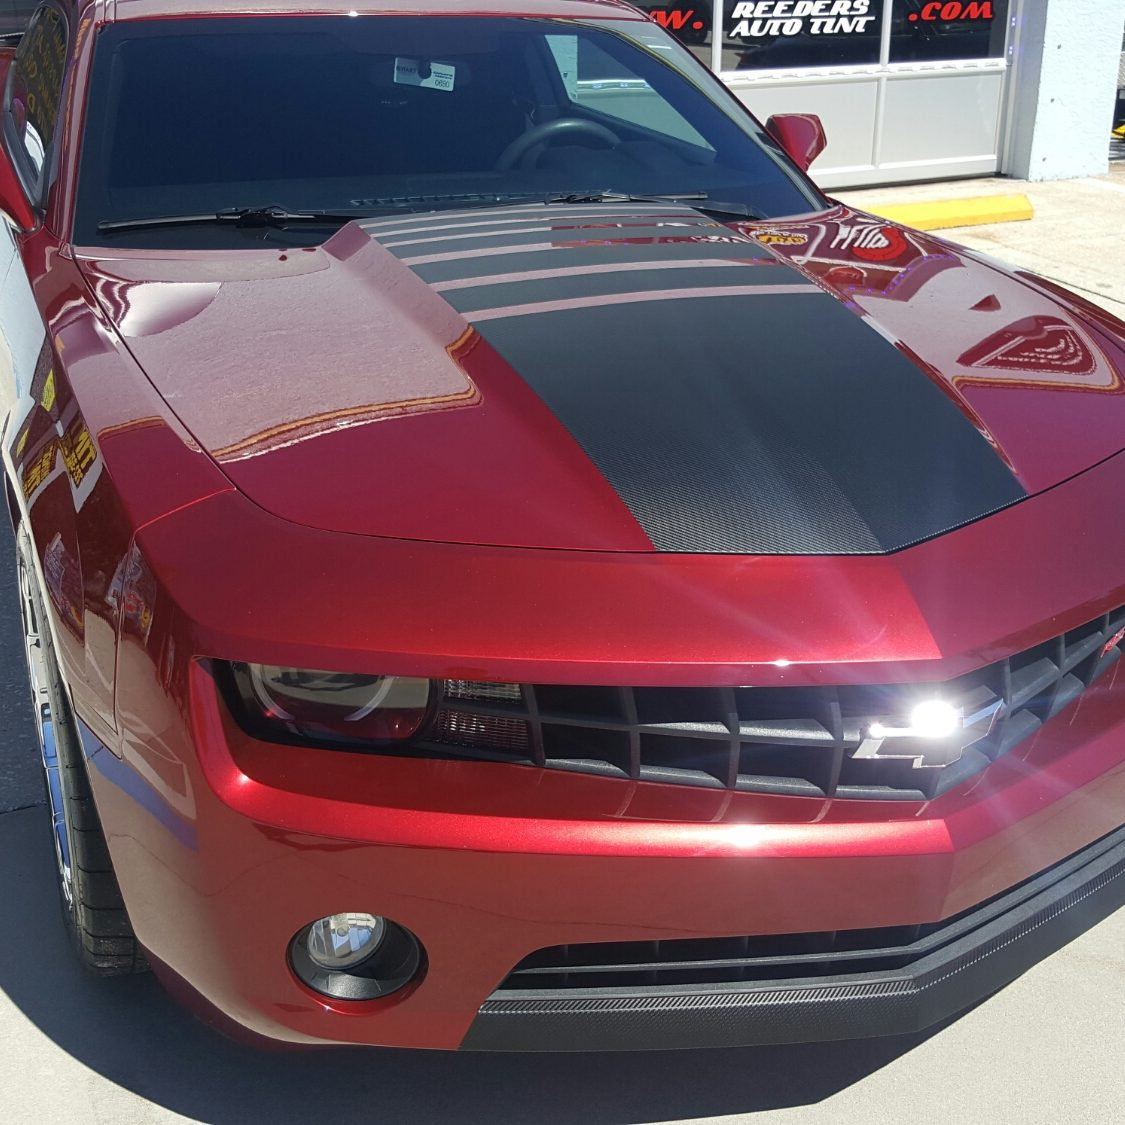 Camaro ceramic coating